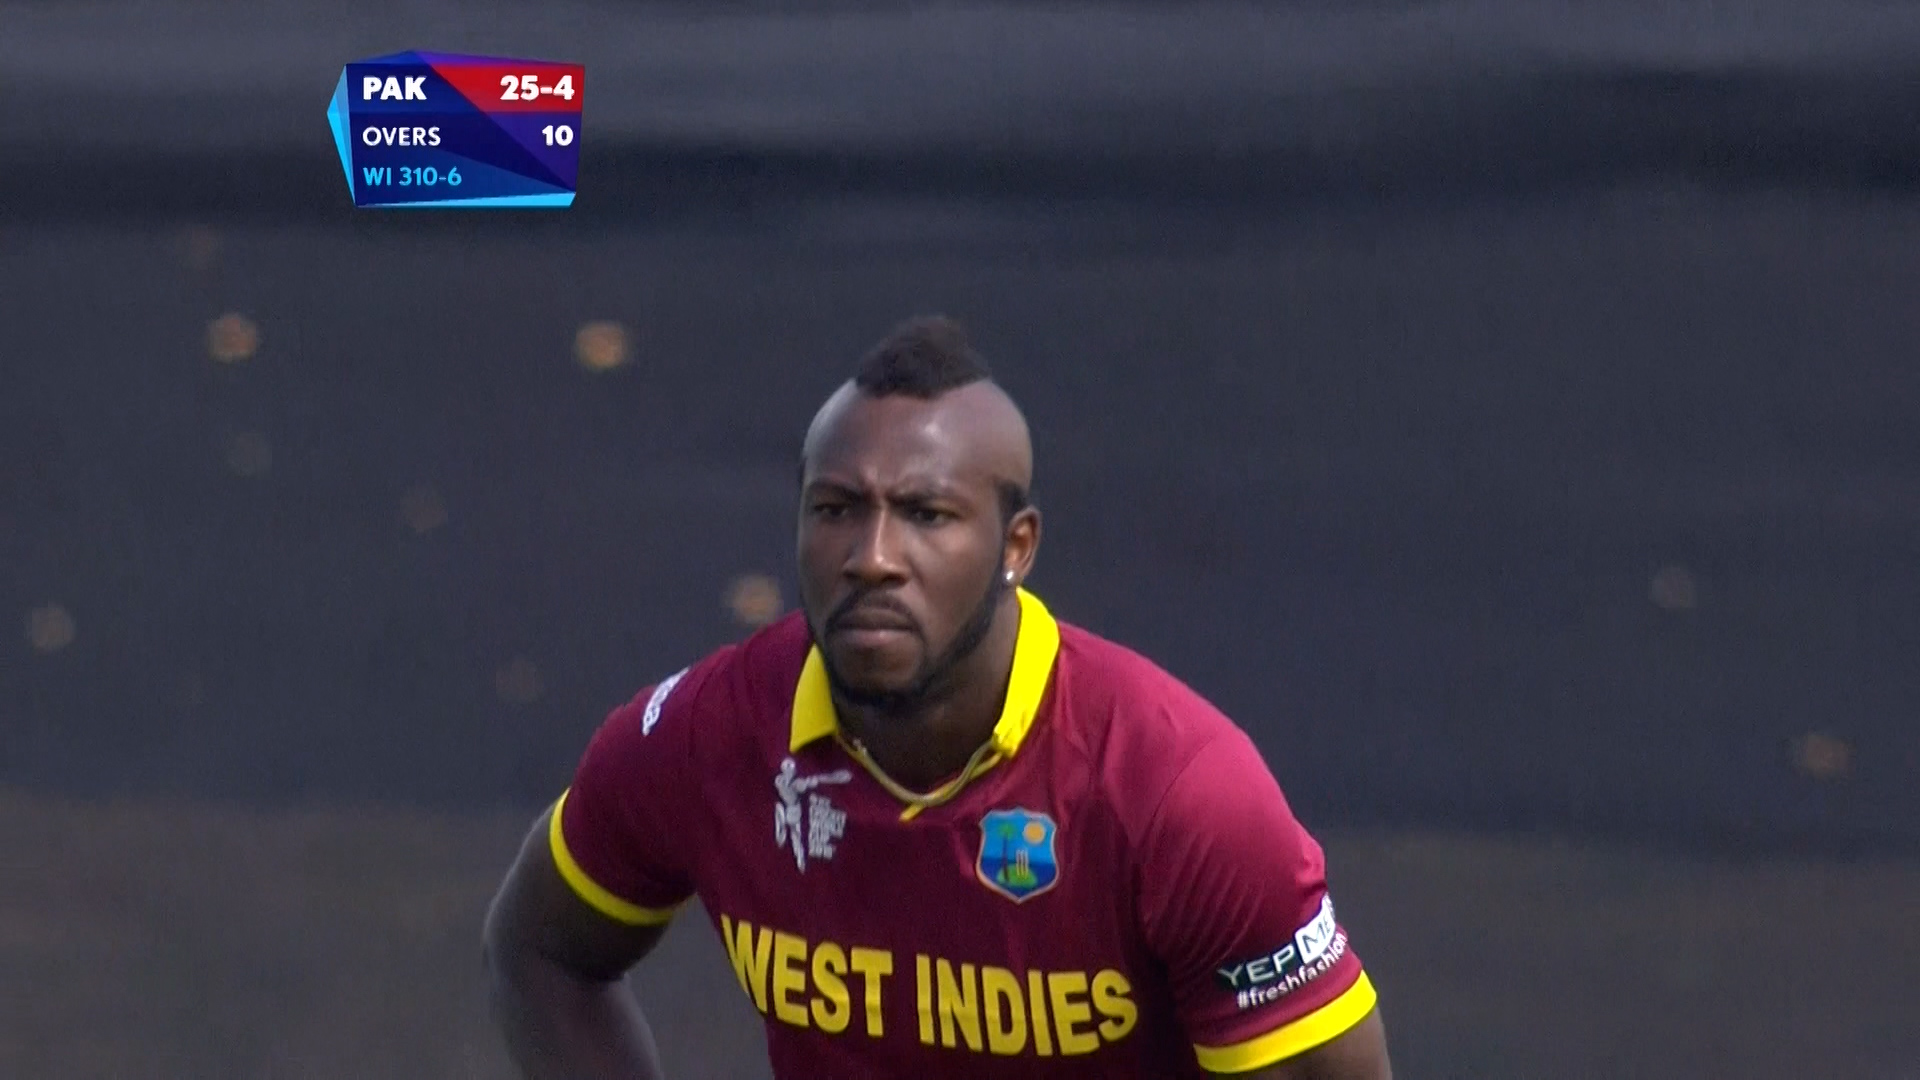 Pakistan v West Indies Match Highlights